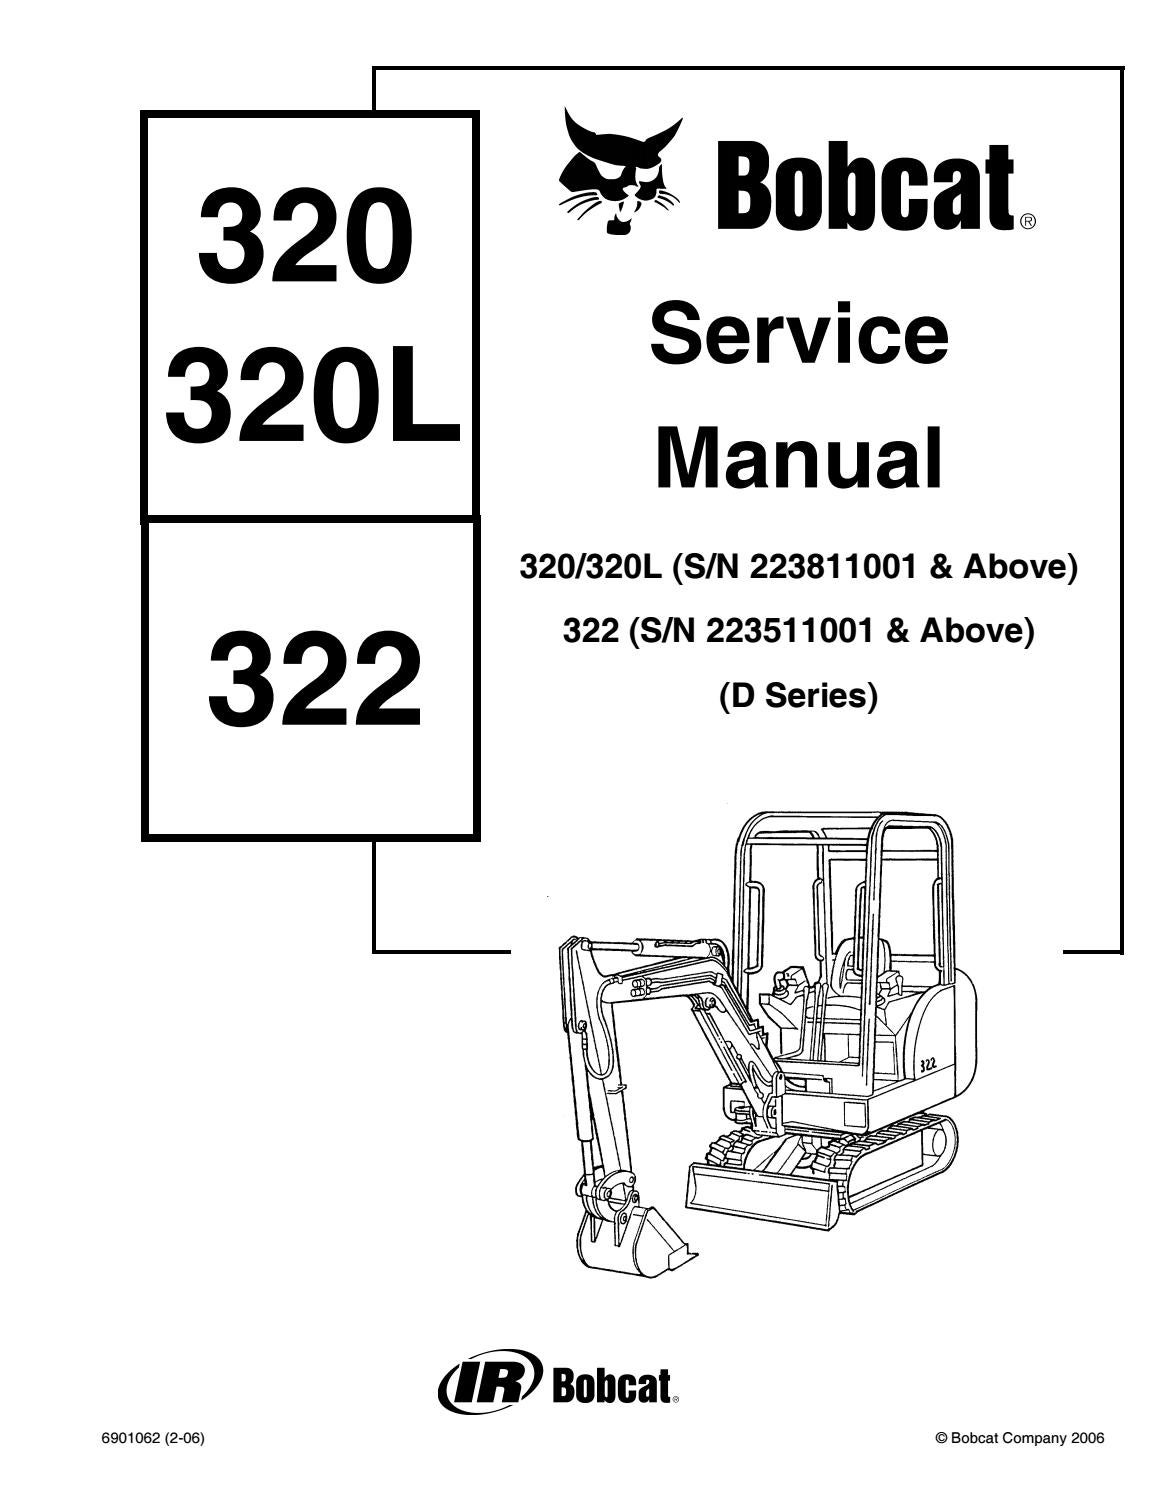 BOBCAT 322 EXCAVATOR Service Repair Manual SN 223511001